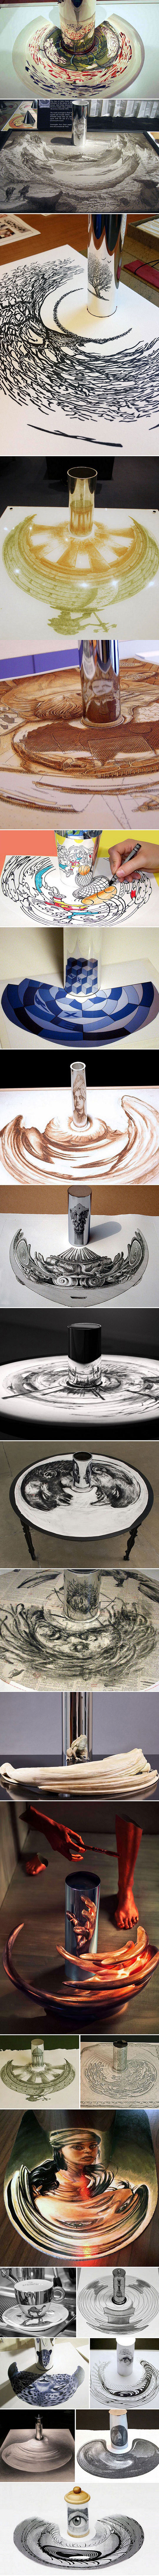 Clever Anamorphic Artworks